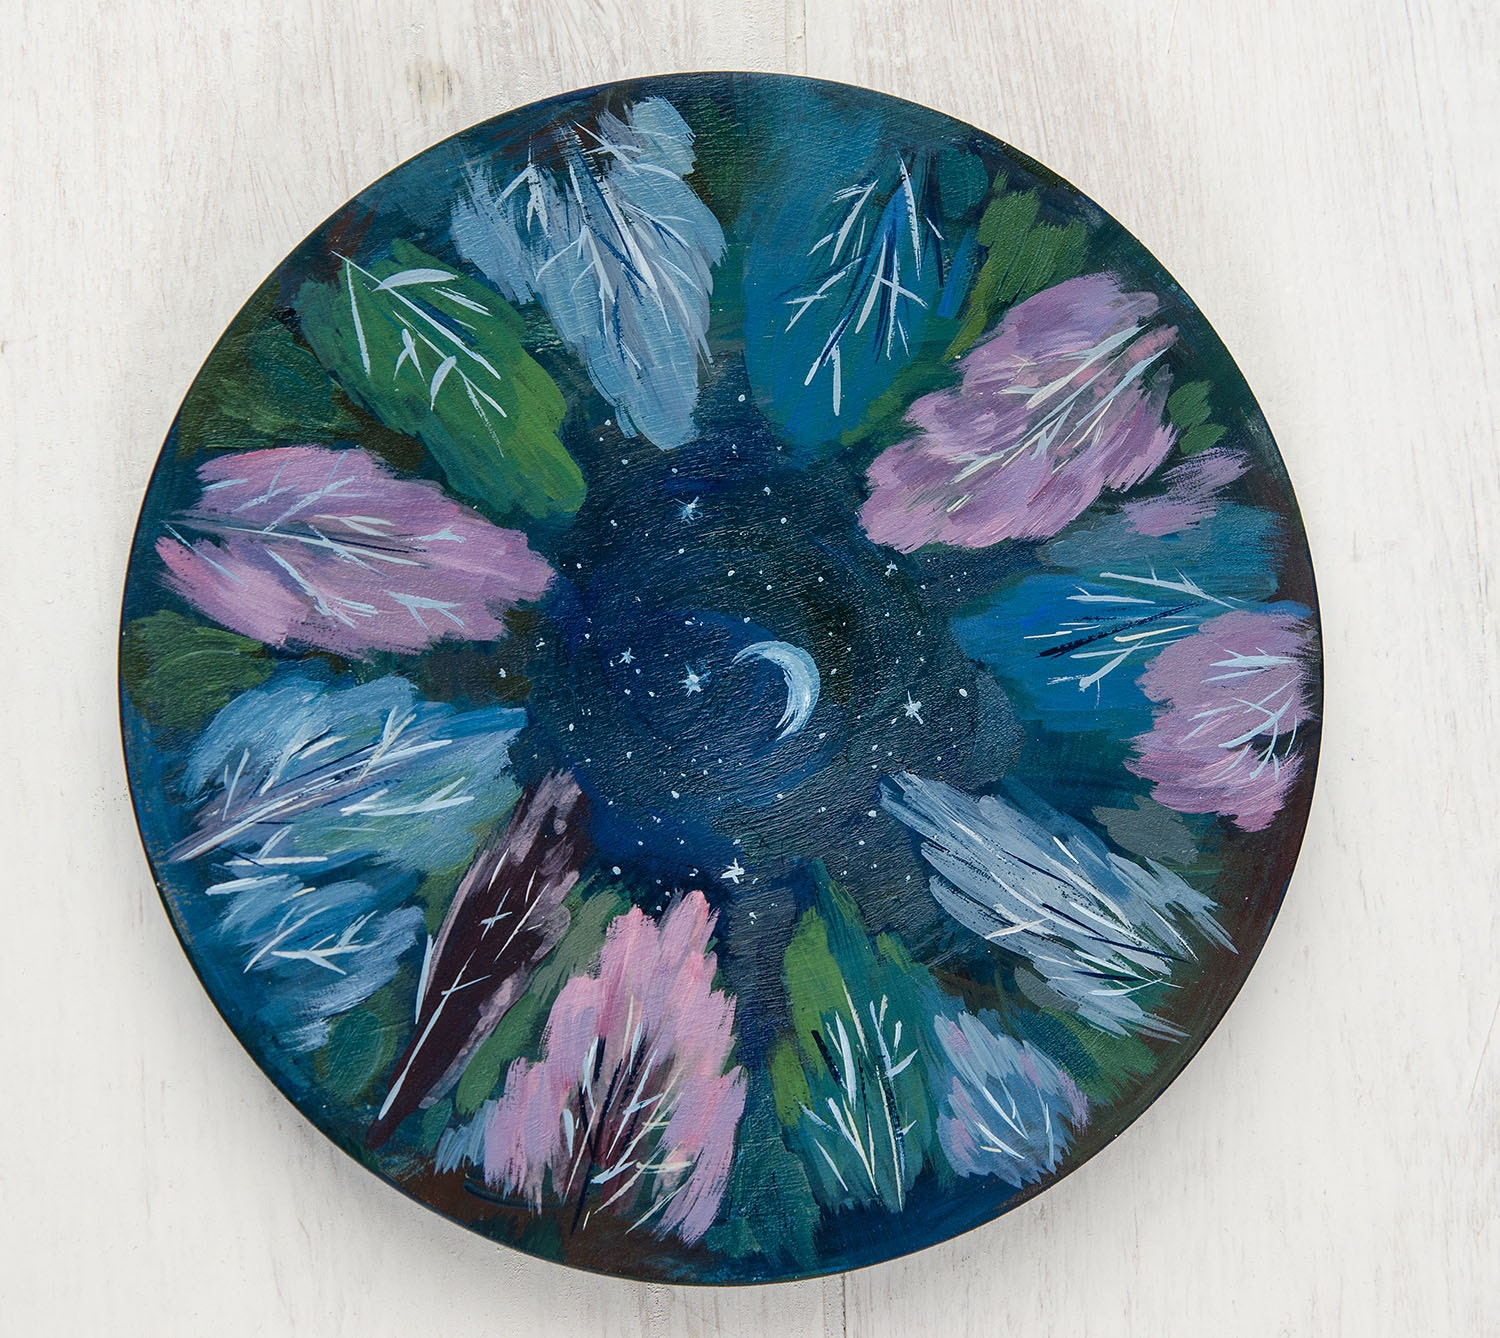 Wall Plates Home Decor : Wall plate for home decor sleeping forest hangings